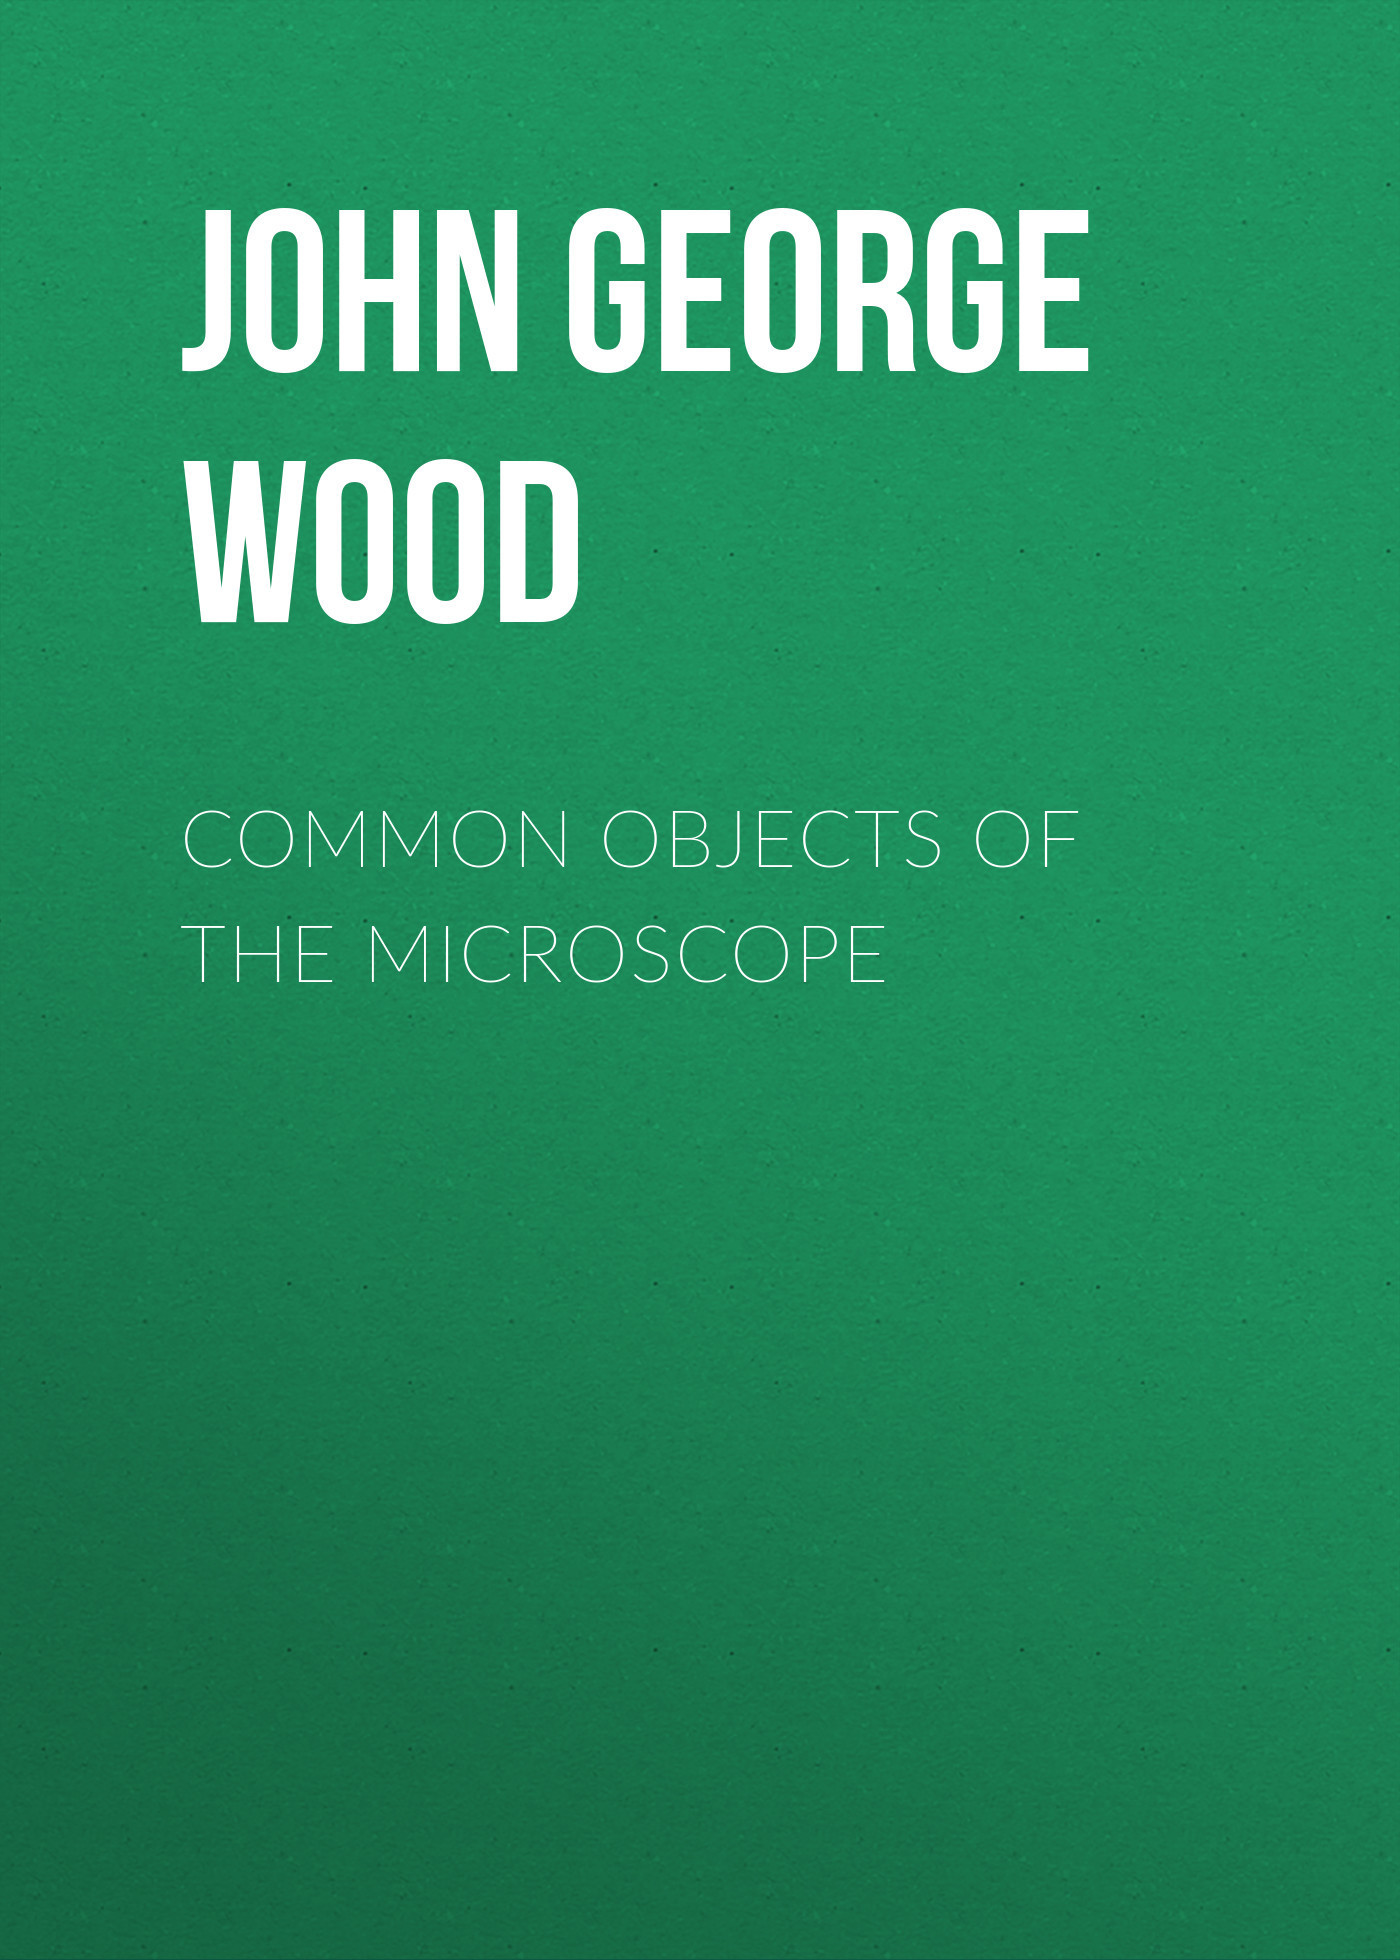 John George Wood Common Objects of the Microscope 20x binocular stereo microscope led biological microscope pcb soldering mobile phone repair plant watch microscope kids gift